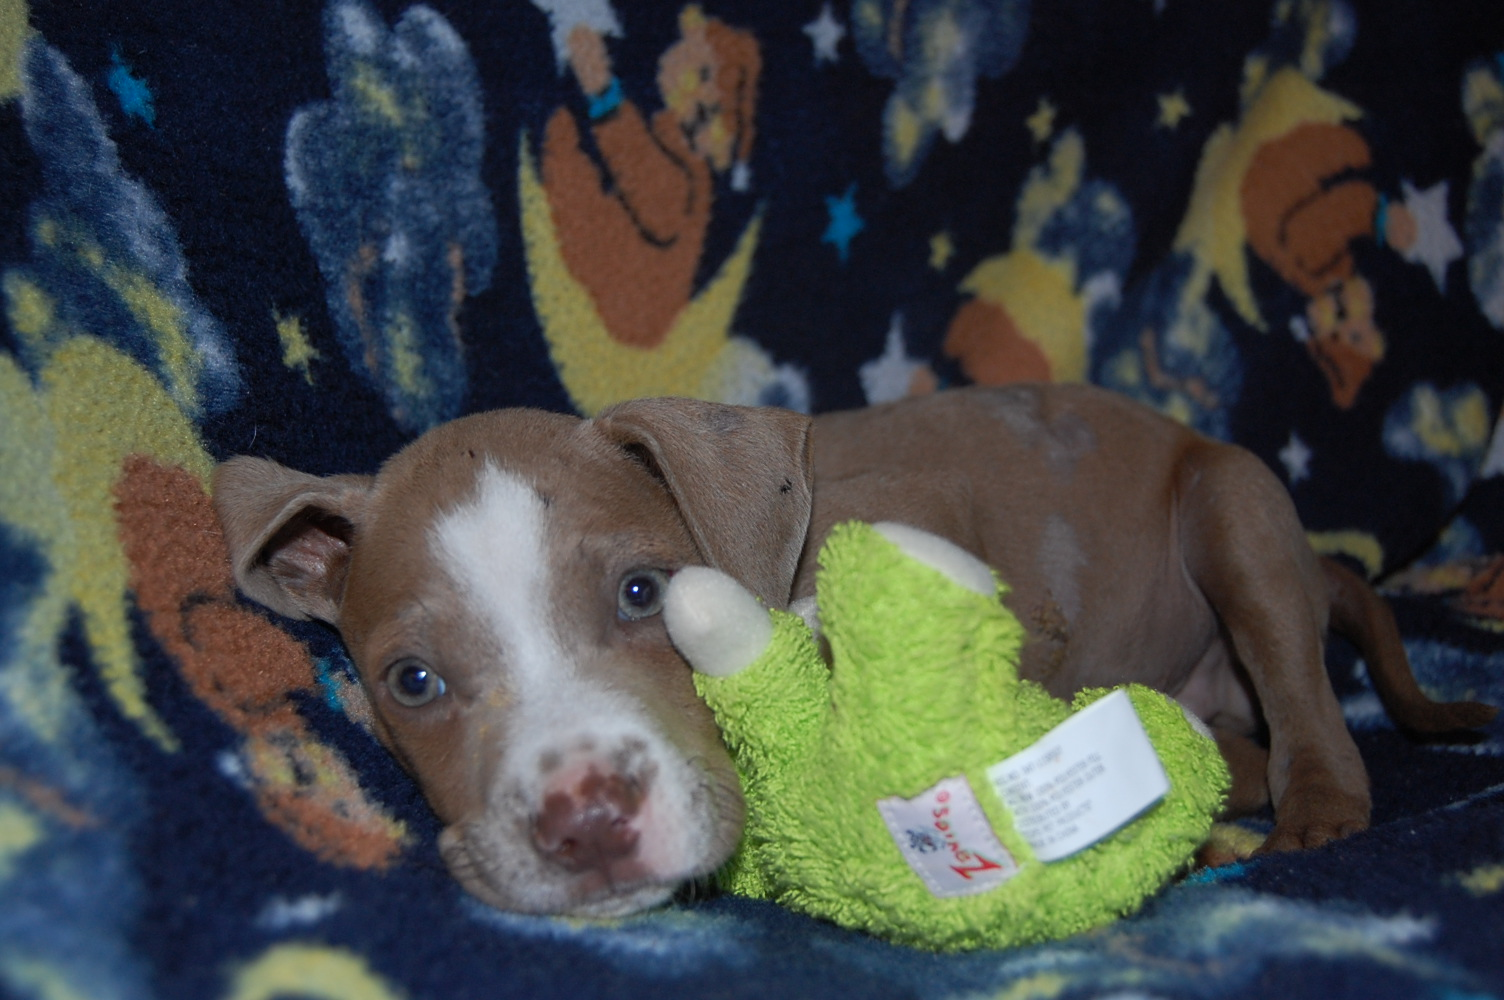 Trooper is an eight week old puppy that was left for dead after being hit by a car in the road. Muttsn-Stuff needs donations to pay for the medical care for his broken pelvis and other wounds.